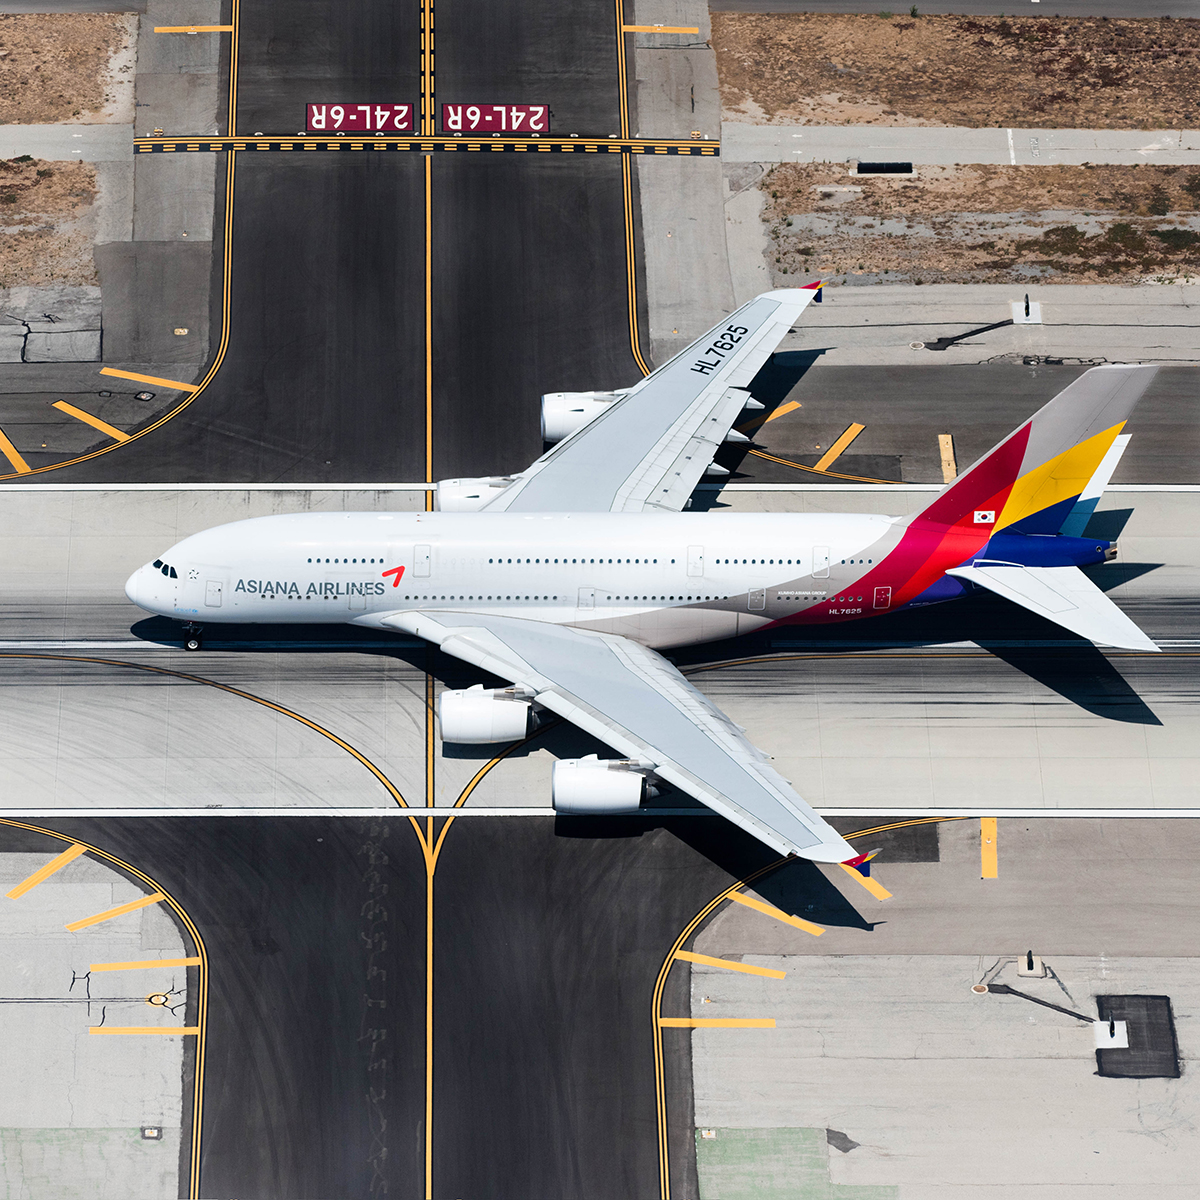 asian a380 intersection full (1 of 1) for site.jpg